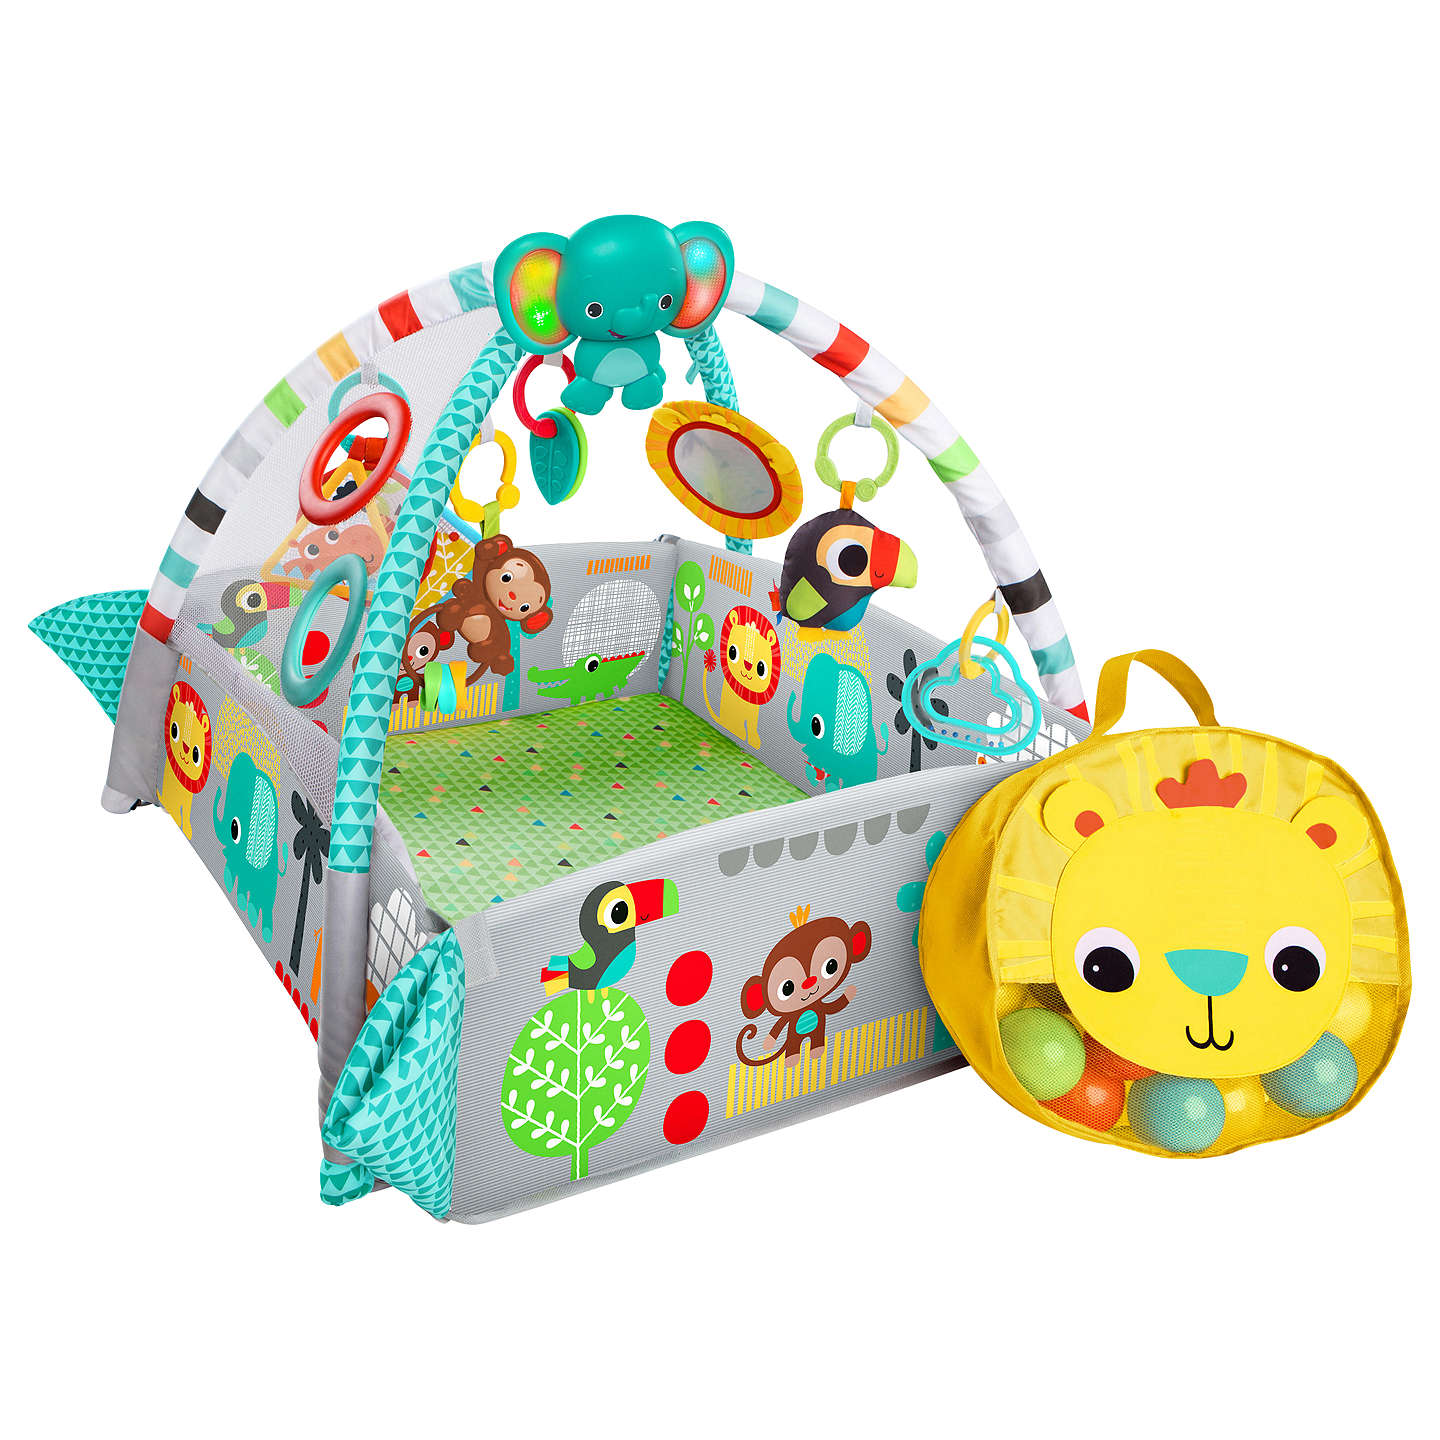 Bright Starts 5 in 1 Ball Activity Play Gym at John Lewis